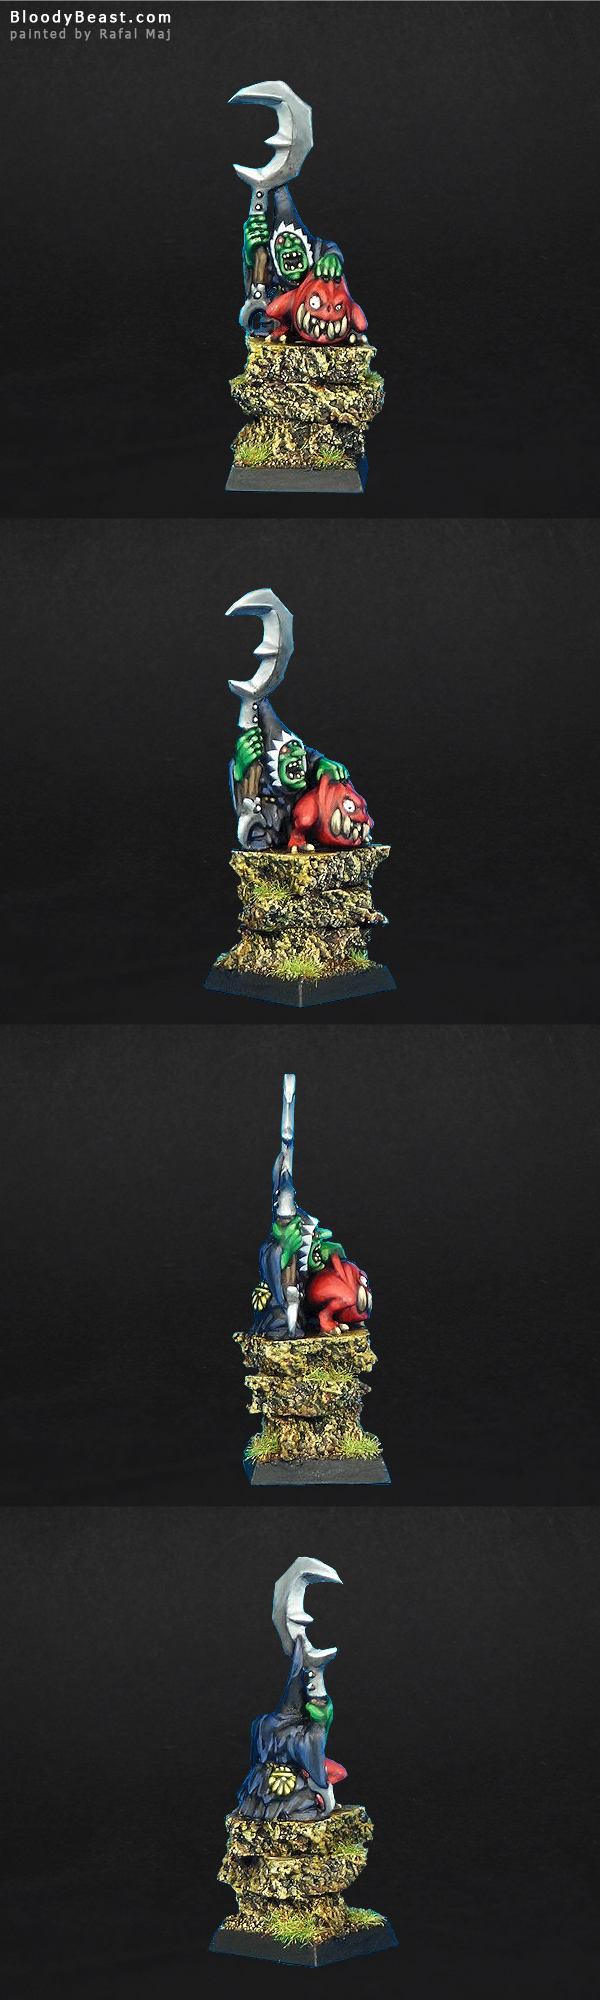 Night Goblin BigBoss with Squig painted by Rafal Maj (BloodyBeast.com)